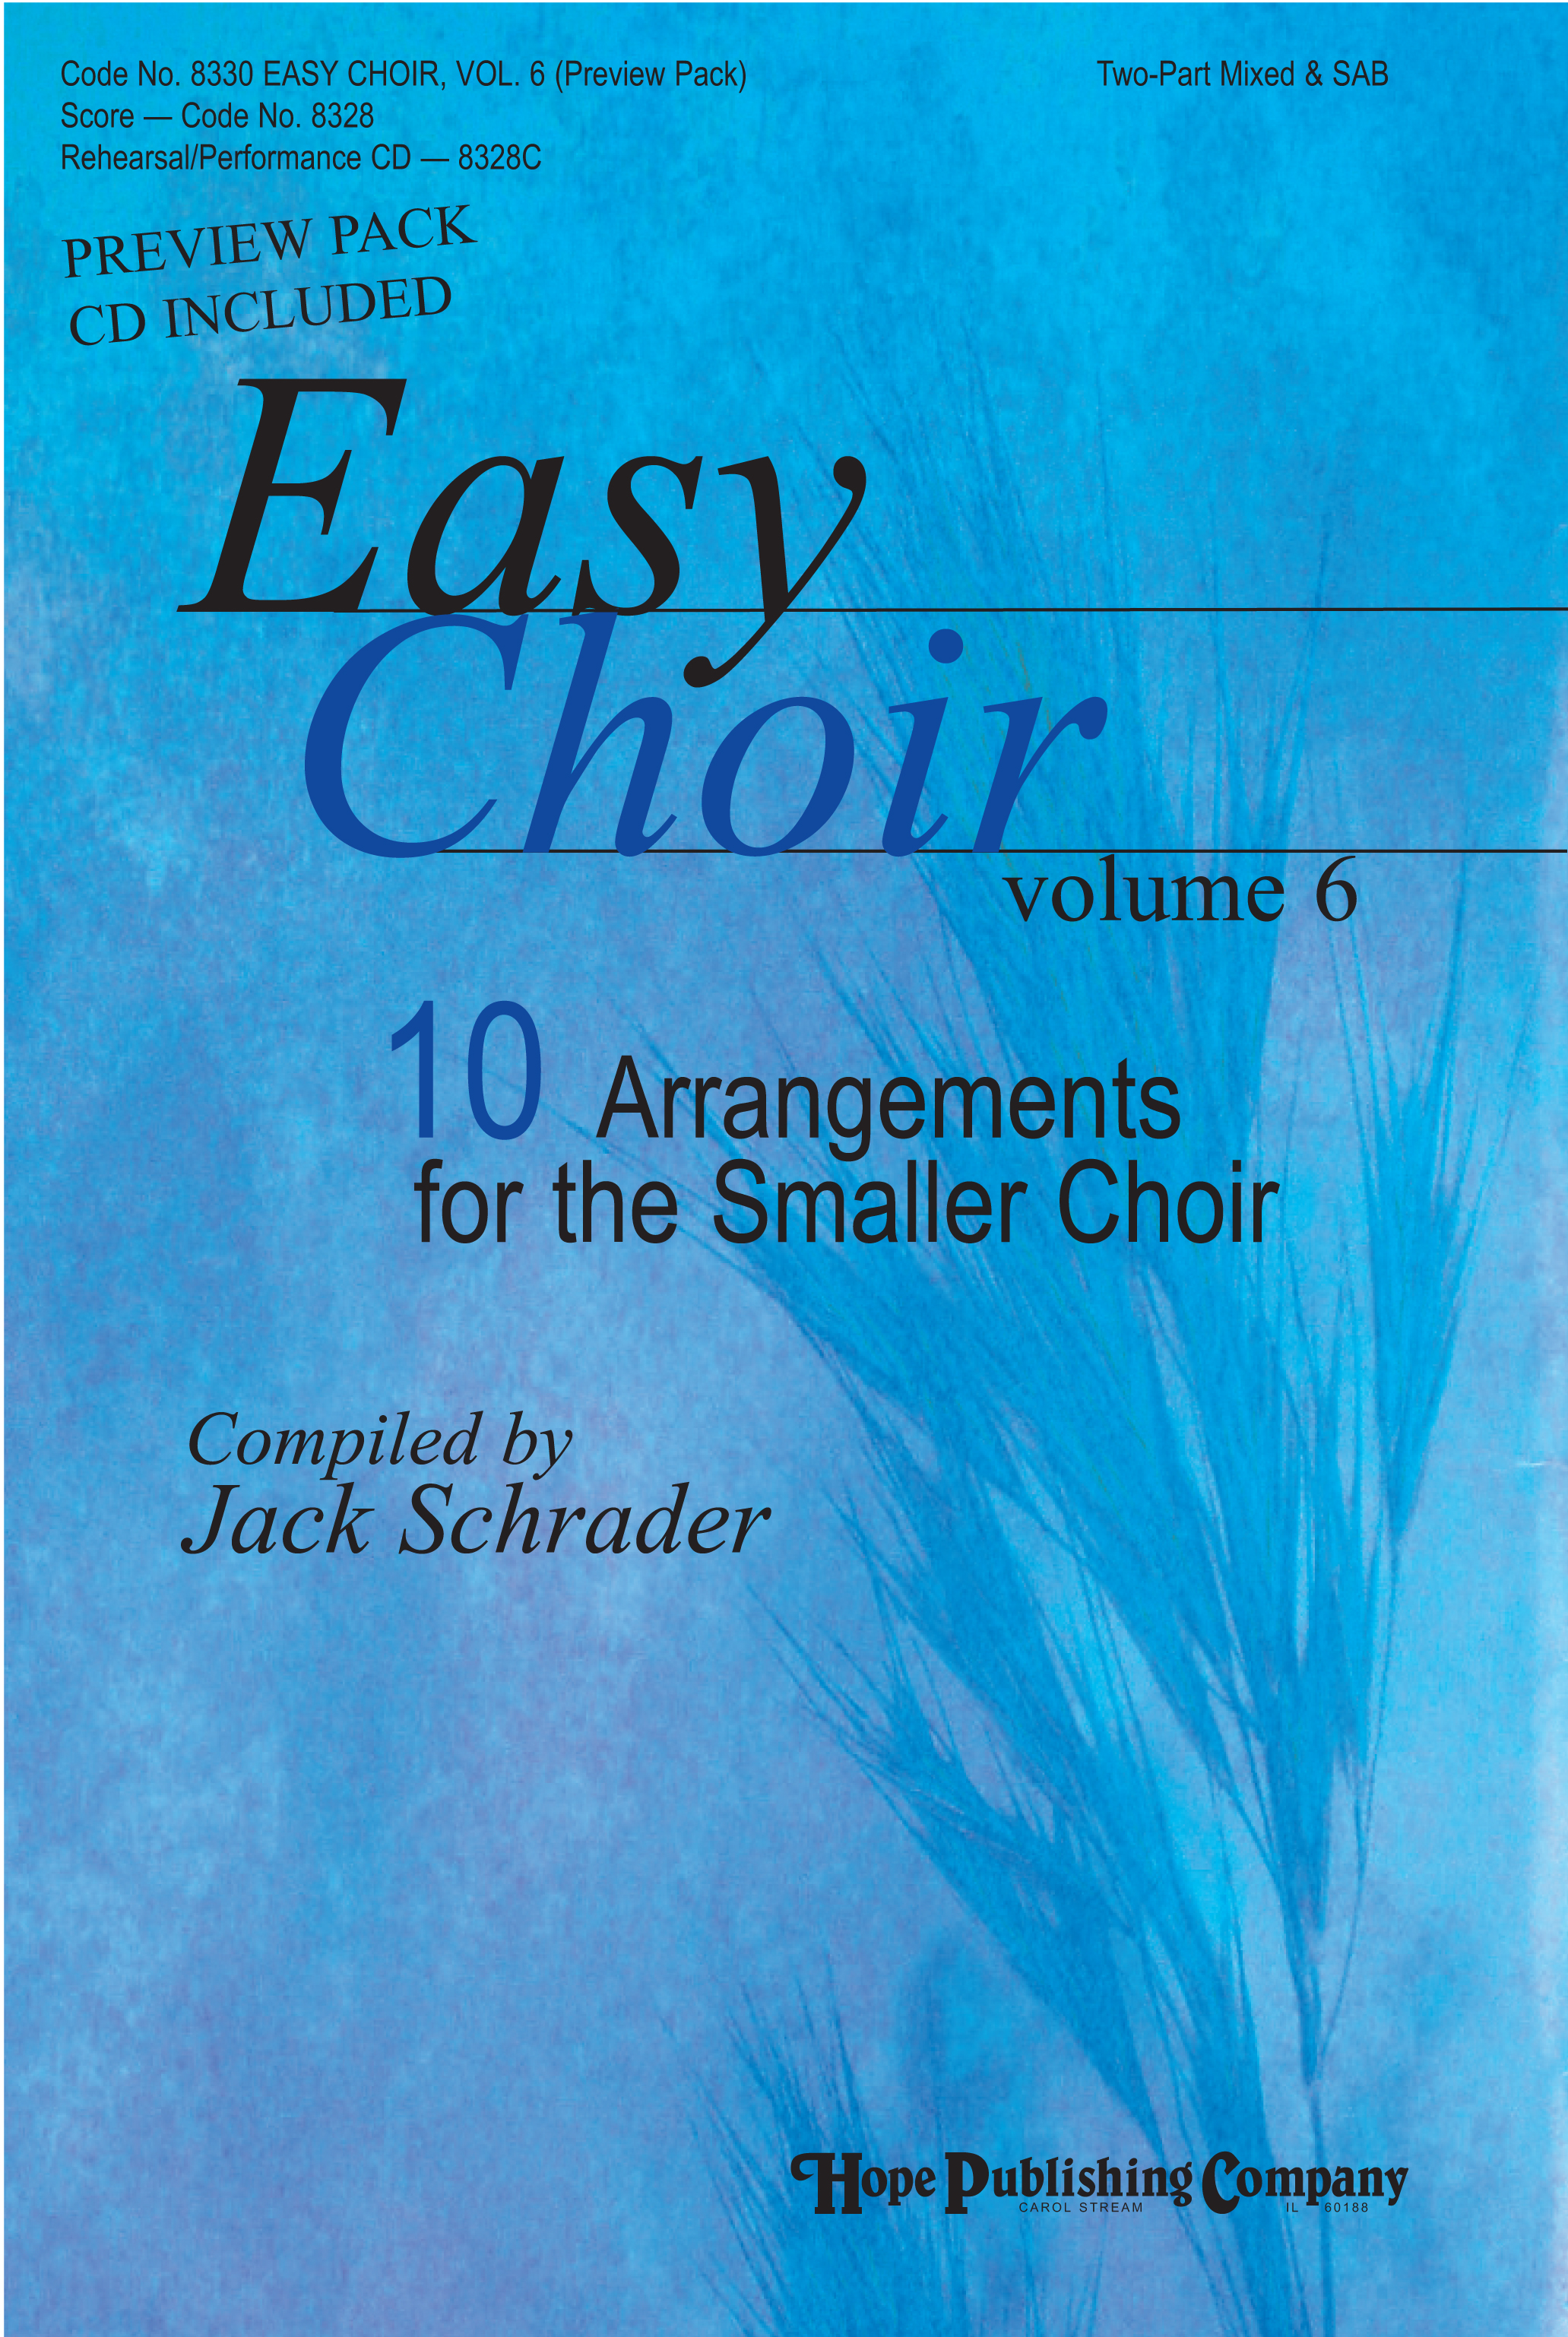 Easy Choir Vol. 6 - Score Cover Image